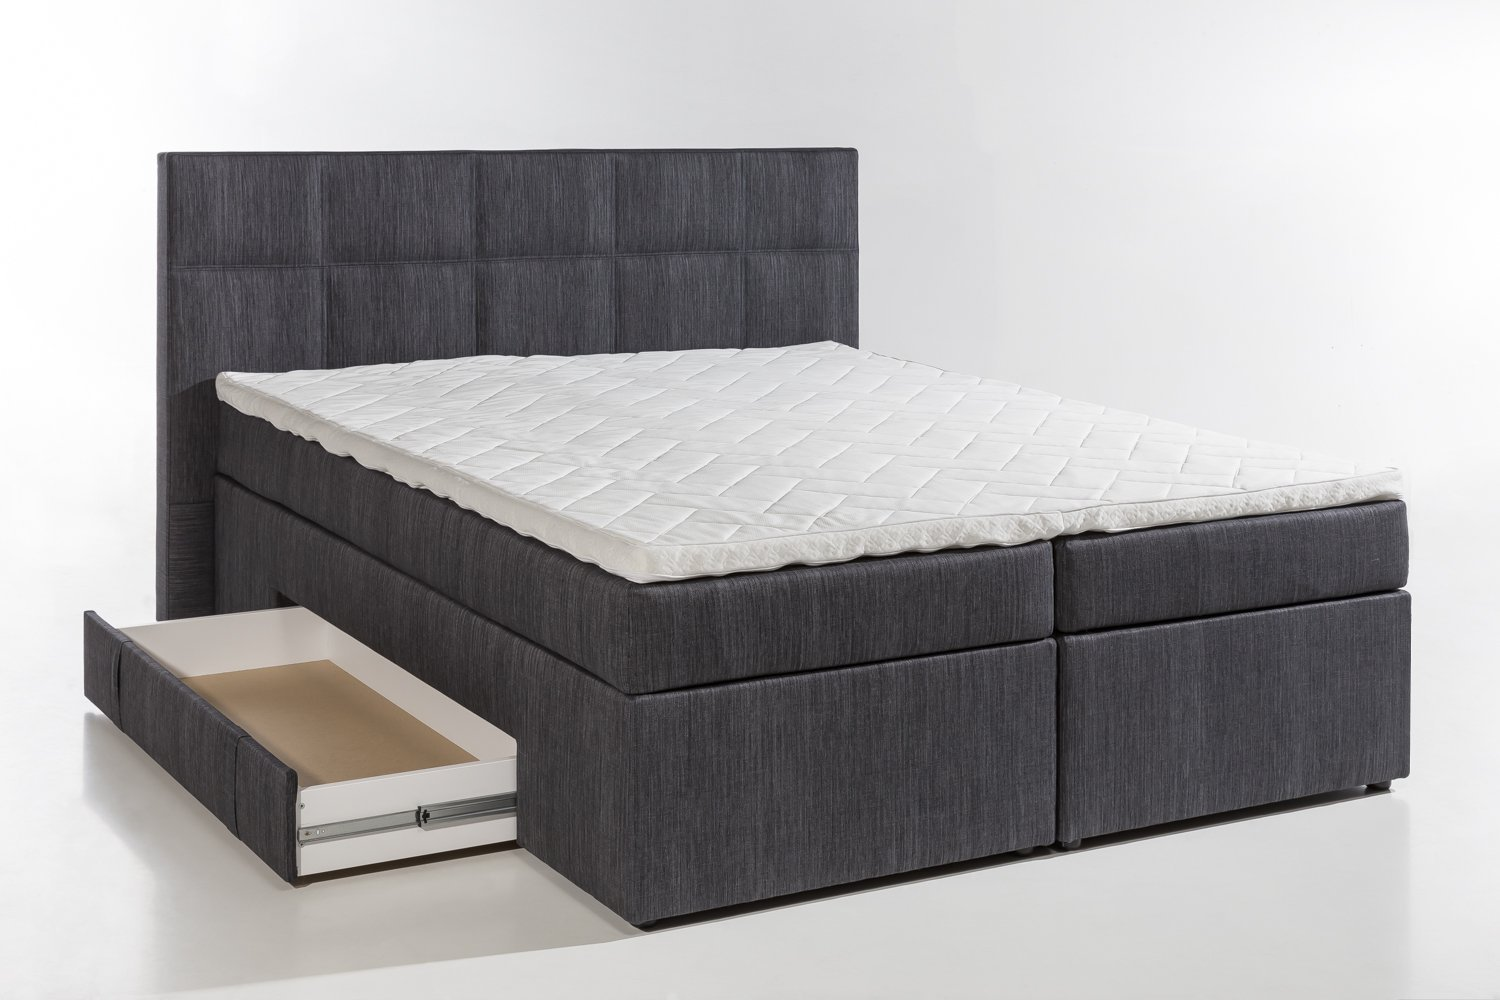 boxspringbett ikea test neuesten design kollektionen f r die familien. Black Bedroom Furniture Sets. Home Design Ideas